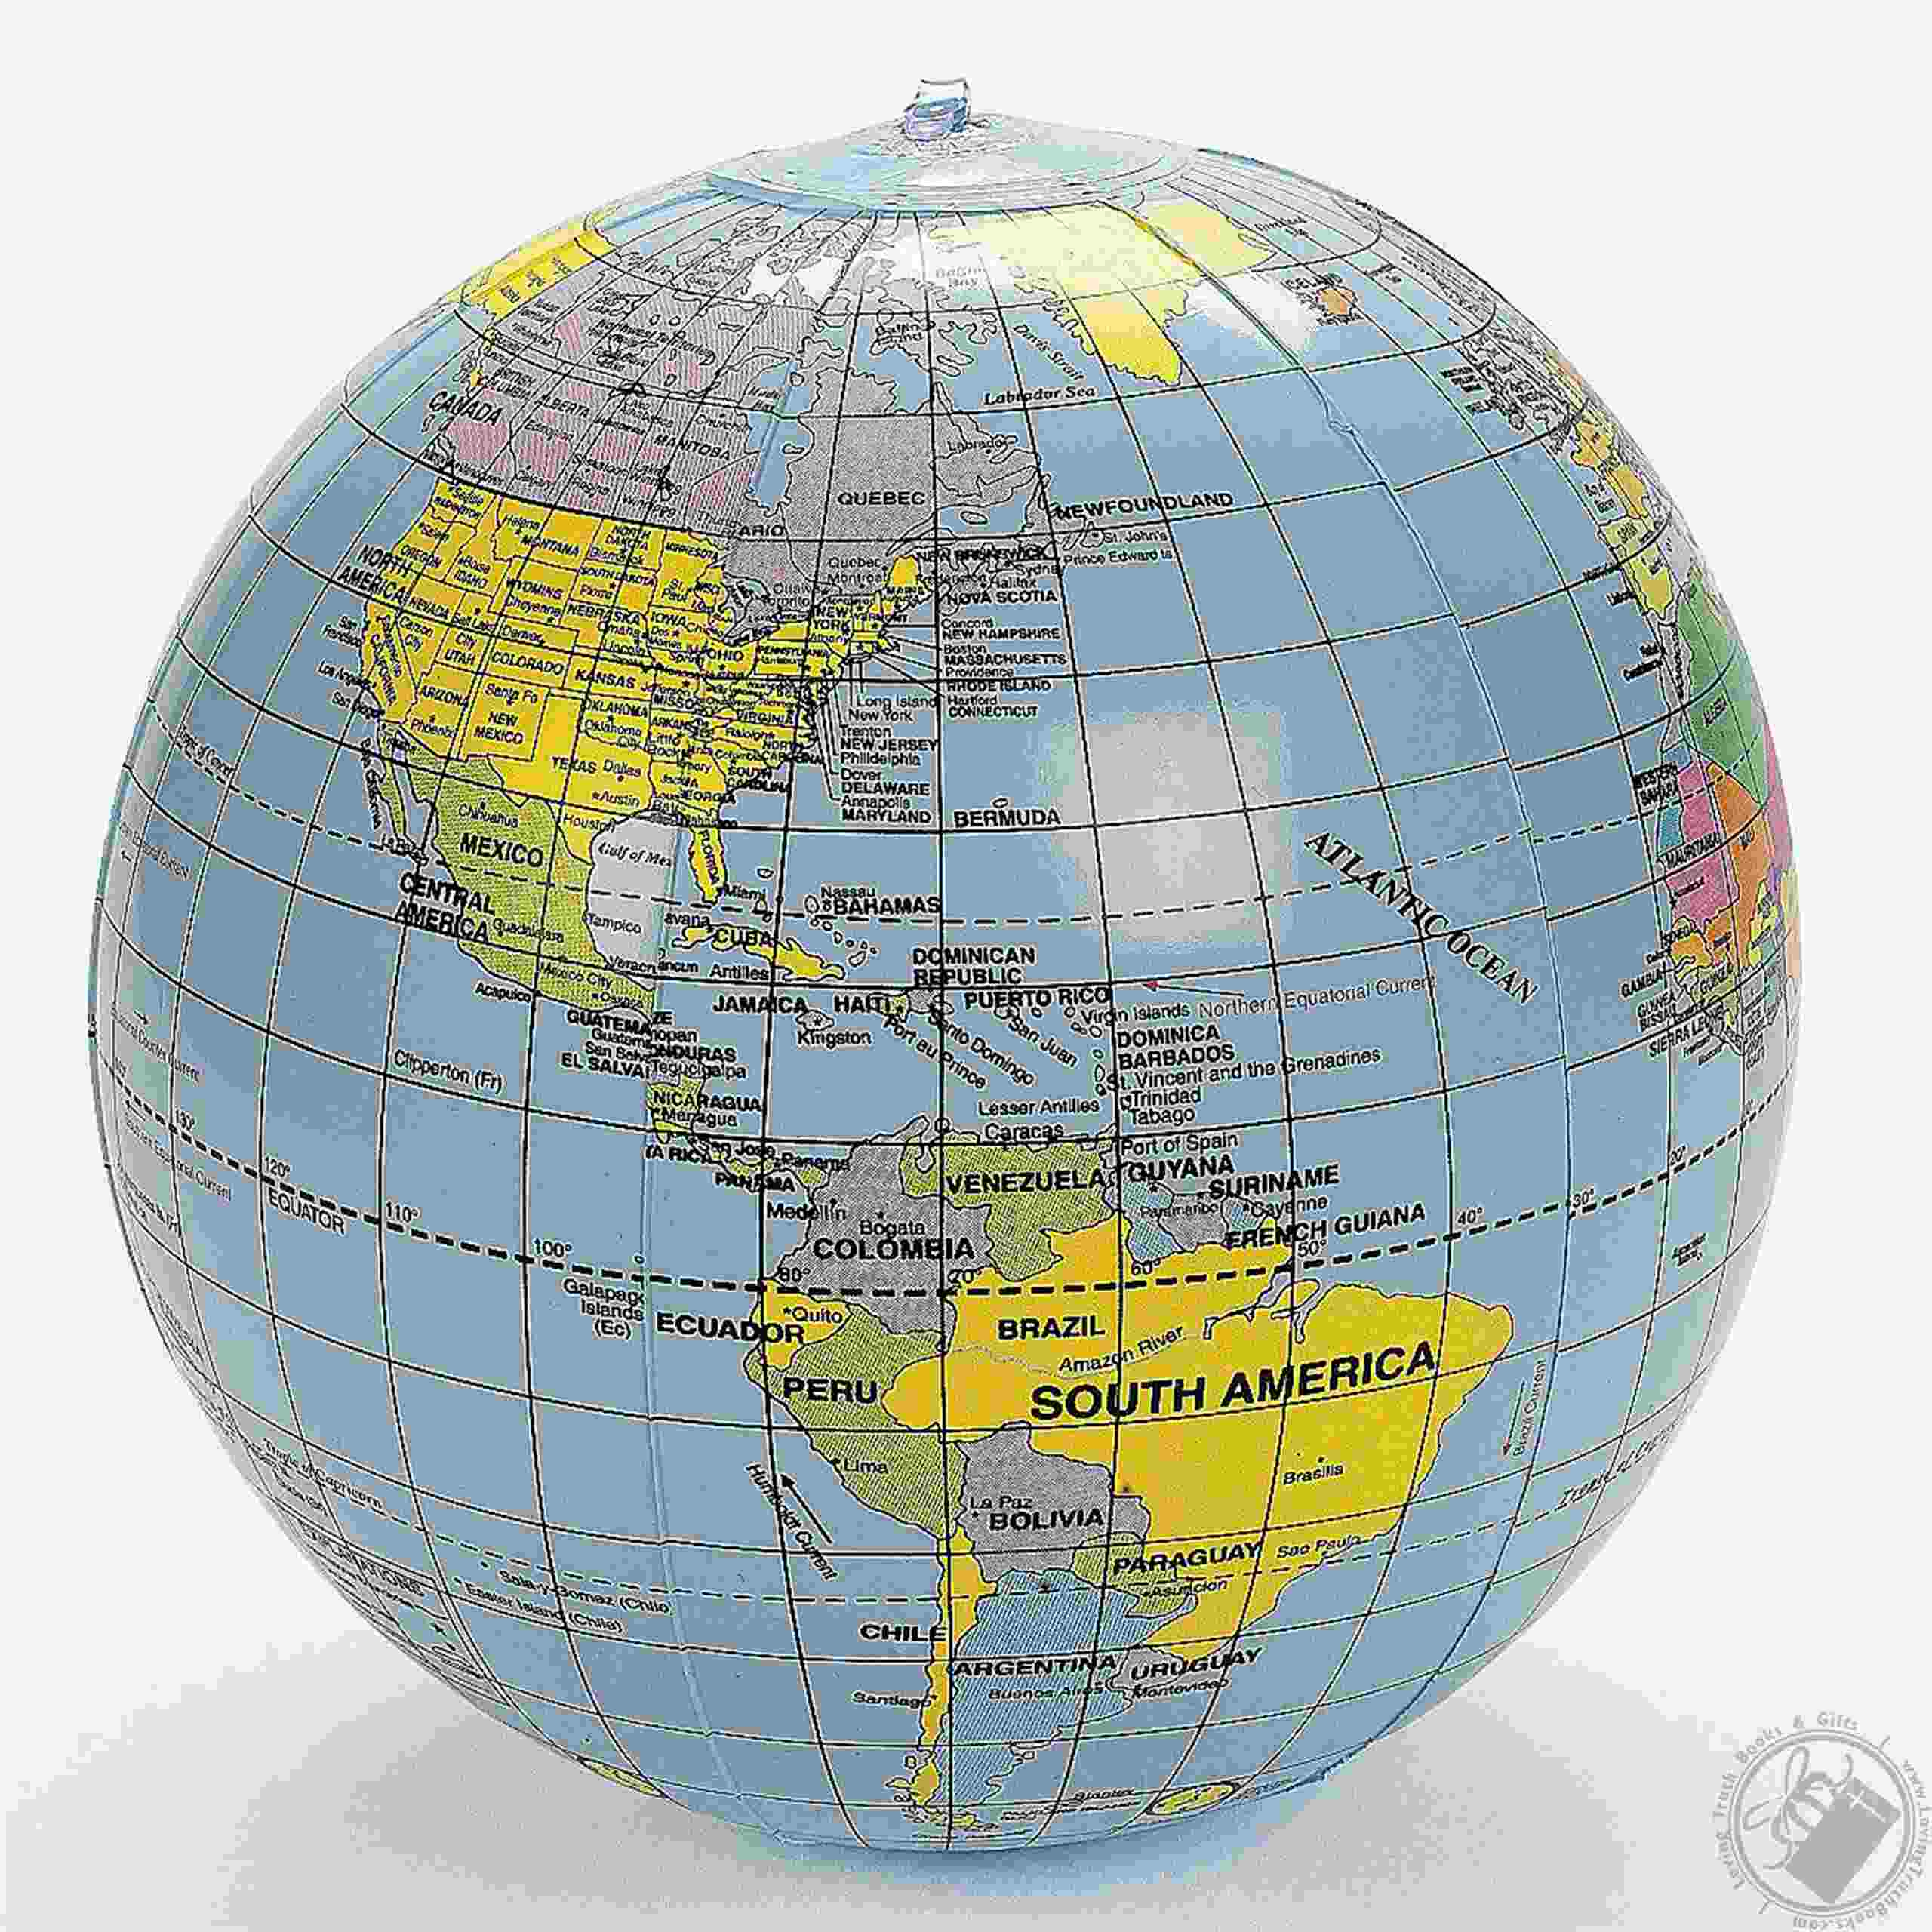 Inflatable world globe political map of the world beach ball by ot share with others gumiabroncs Choice Image